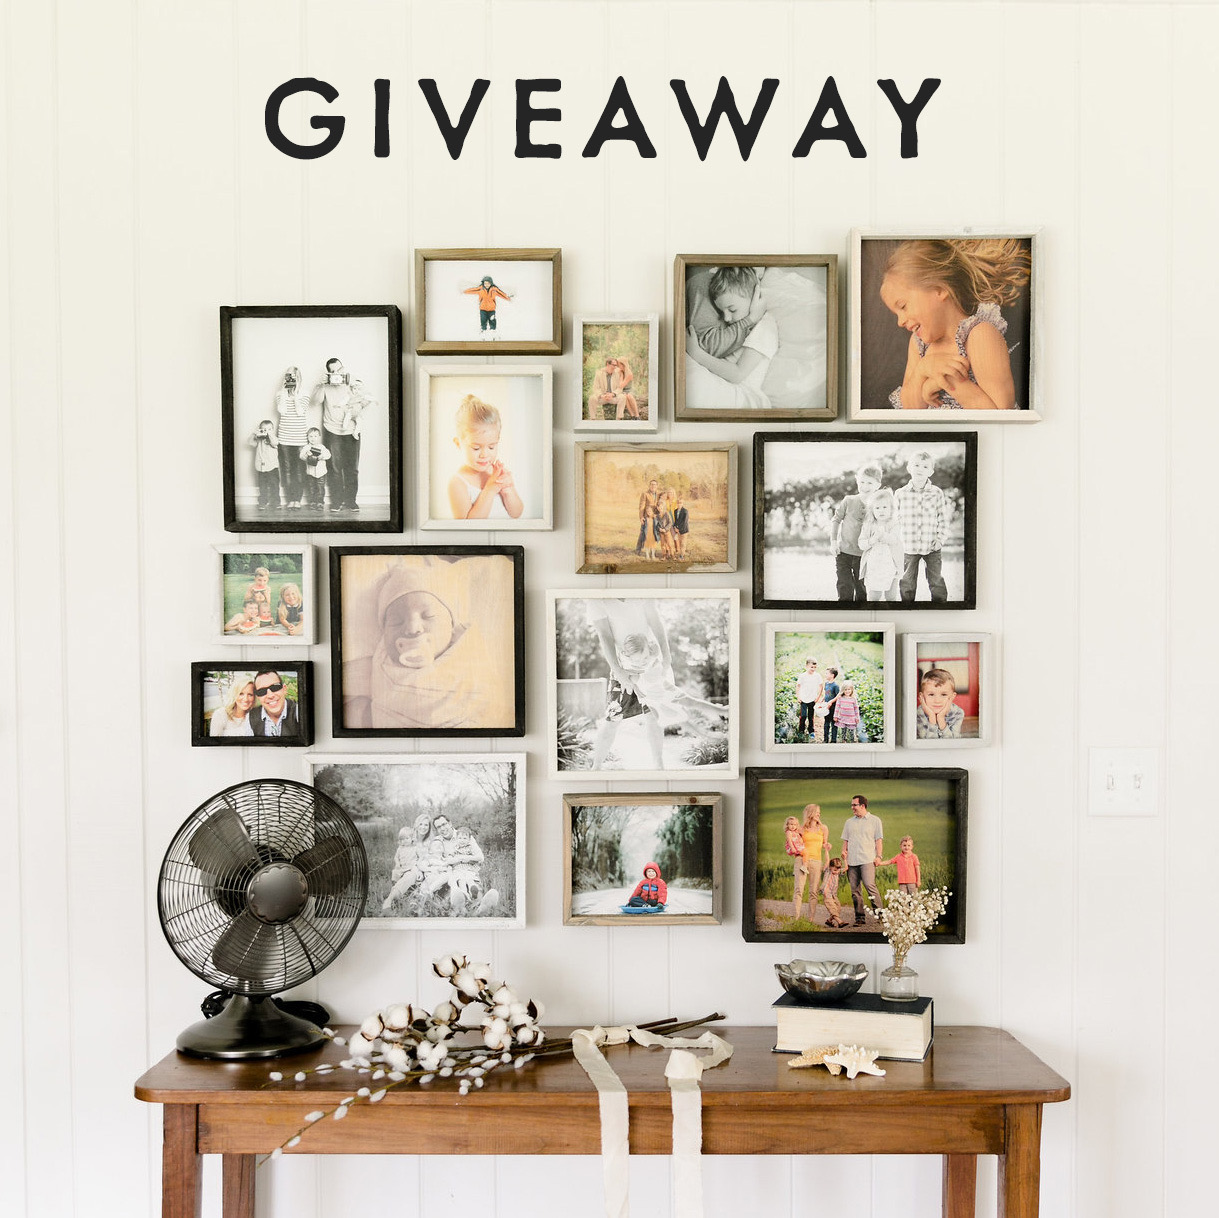 Join our email newsletter to enter to win $300 towards innovative and unique photo products from PhotoBarn!